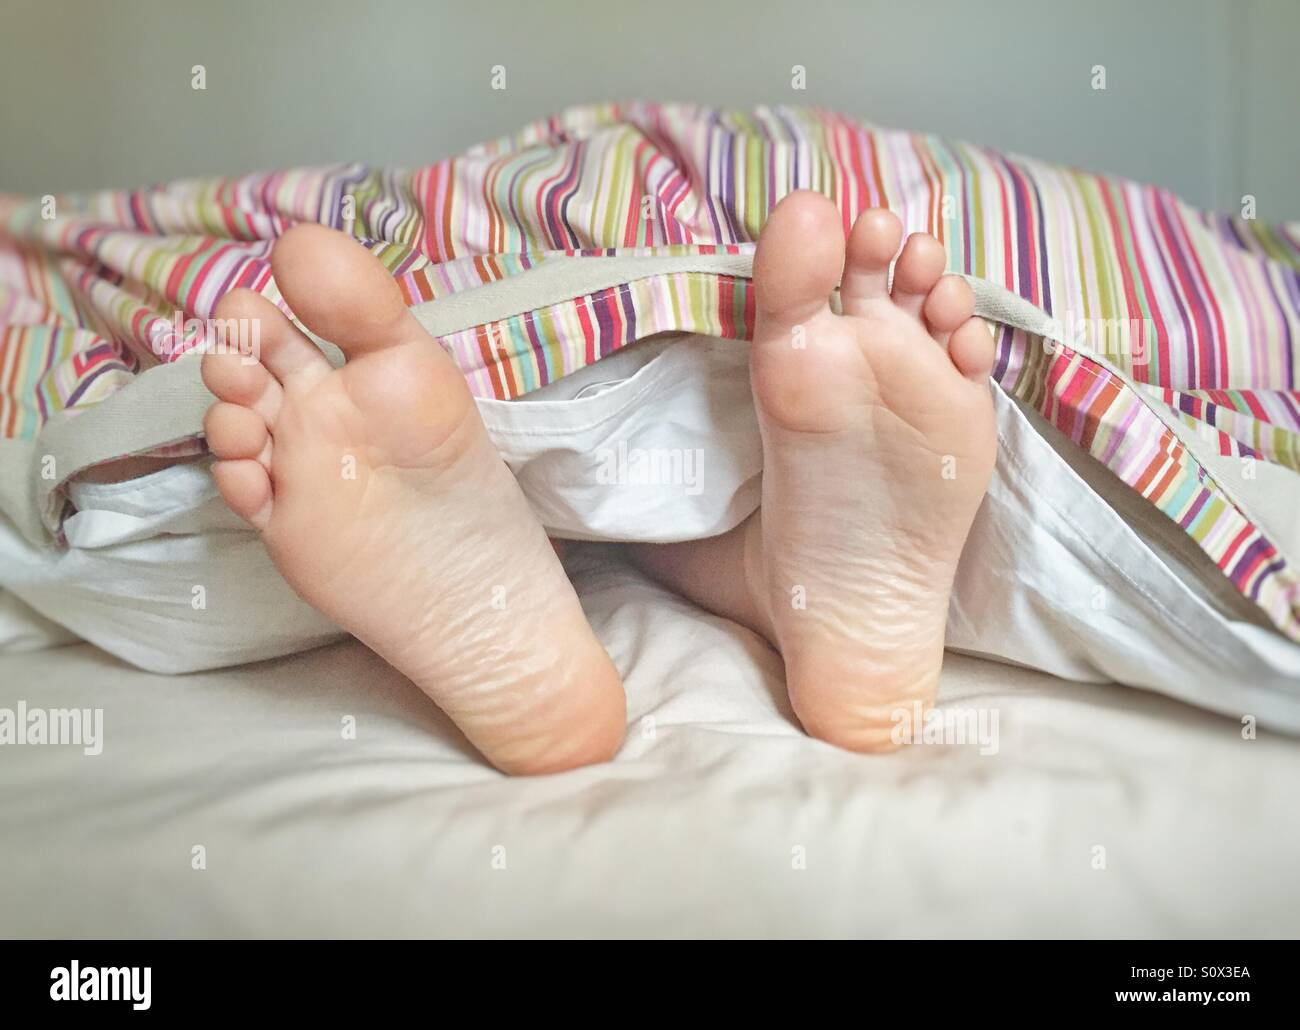 Wakey Wakey! Feet poking out from under the duvet cover - Stock Image